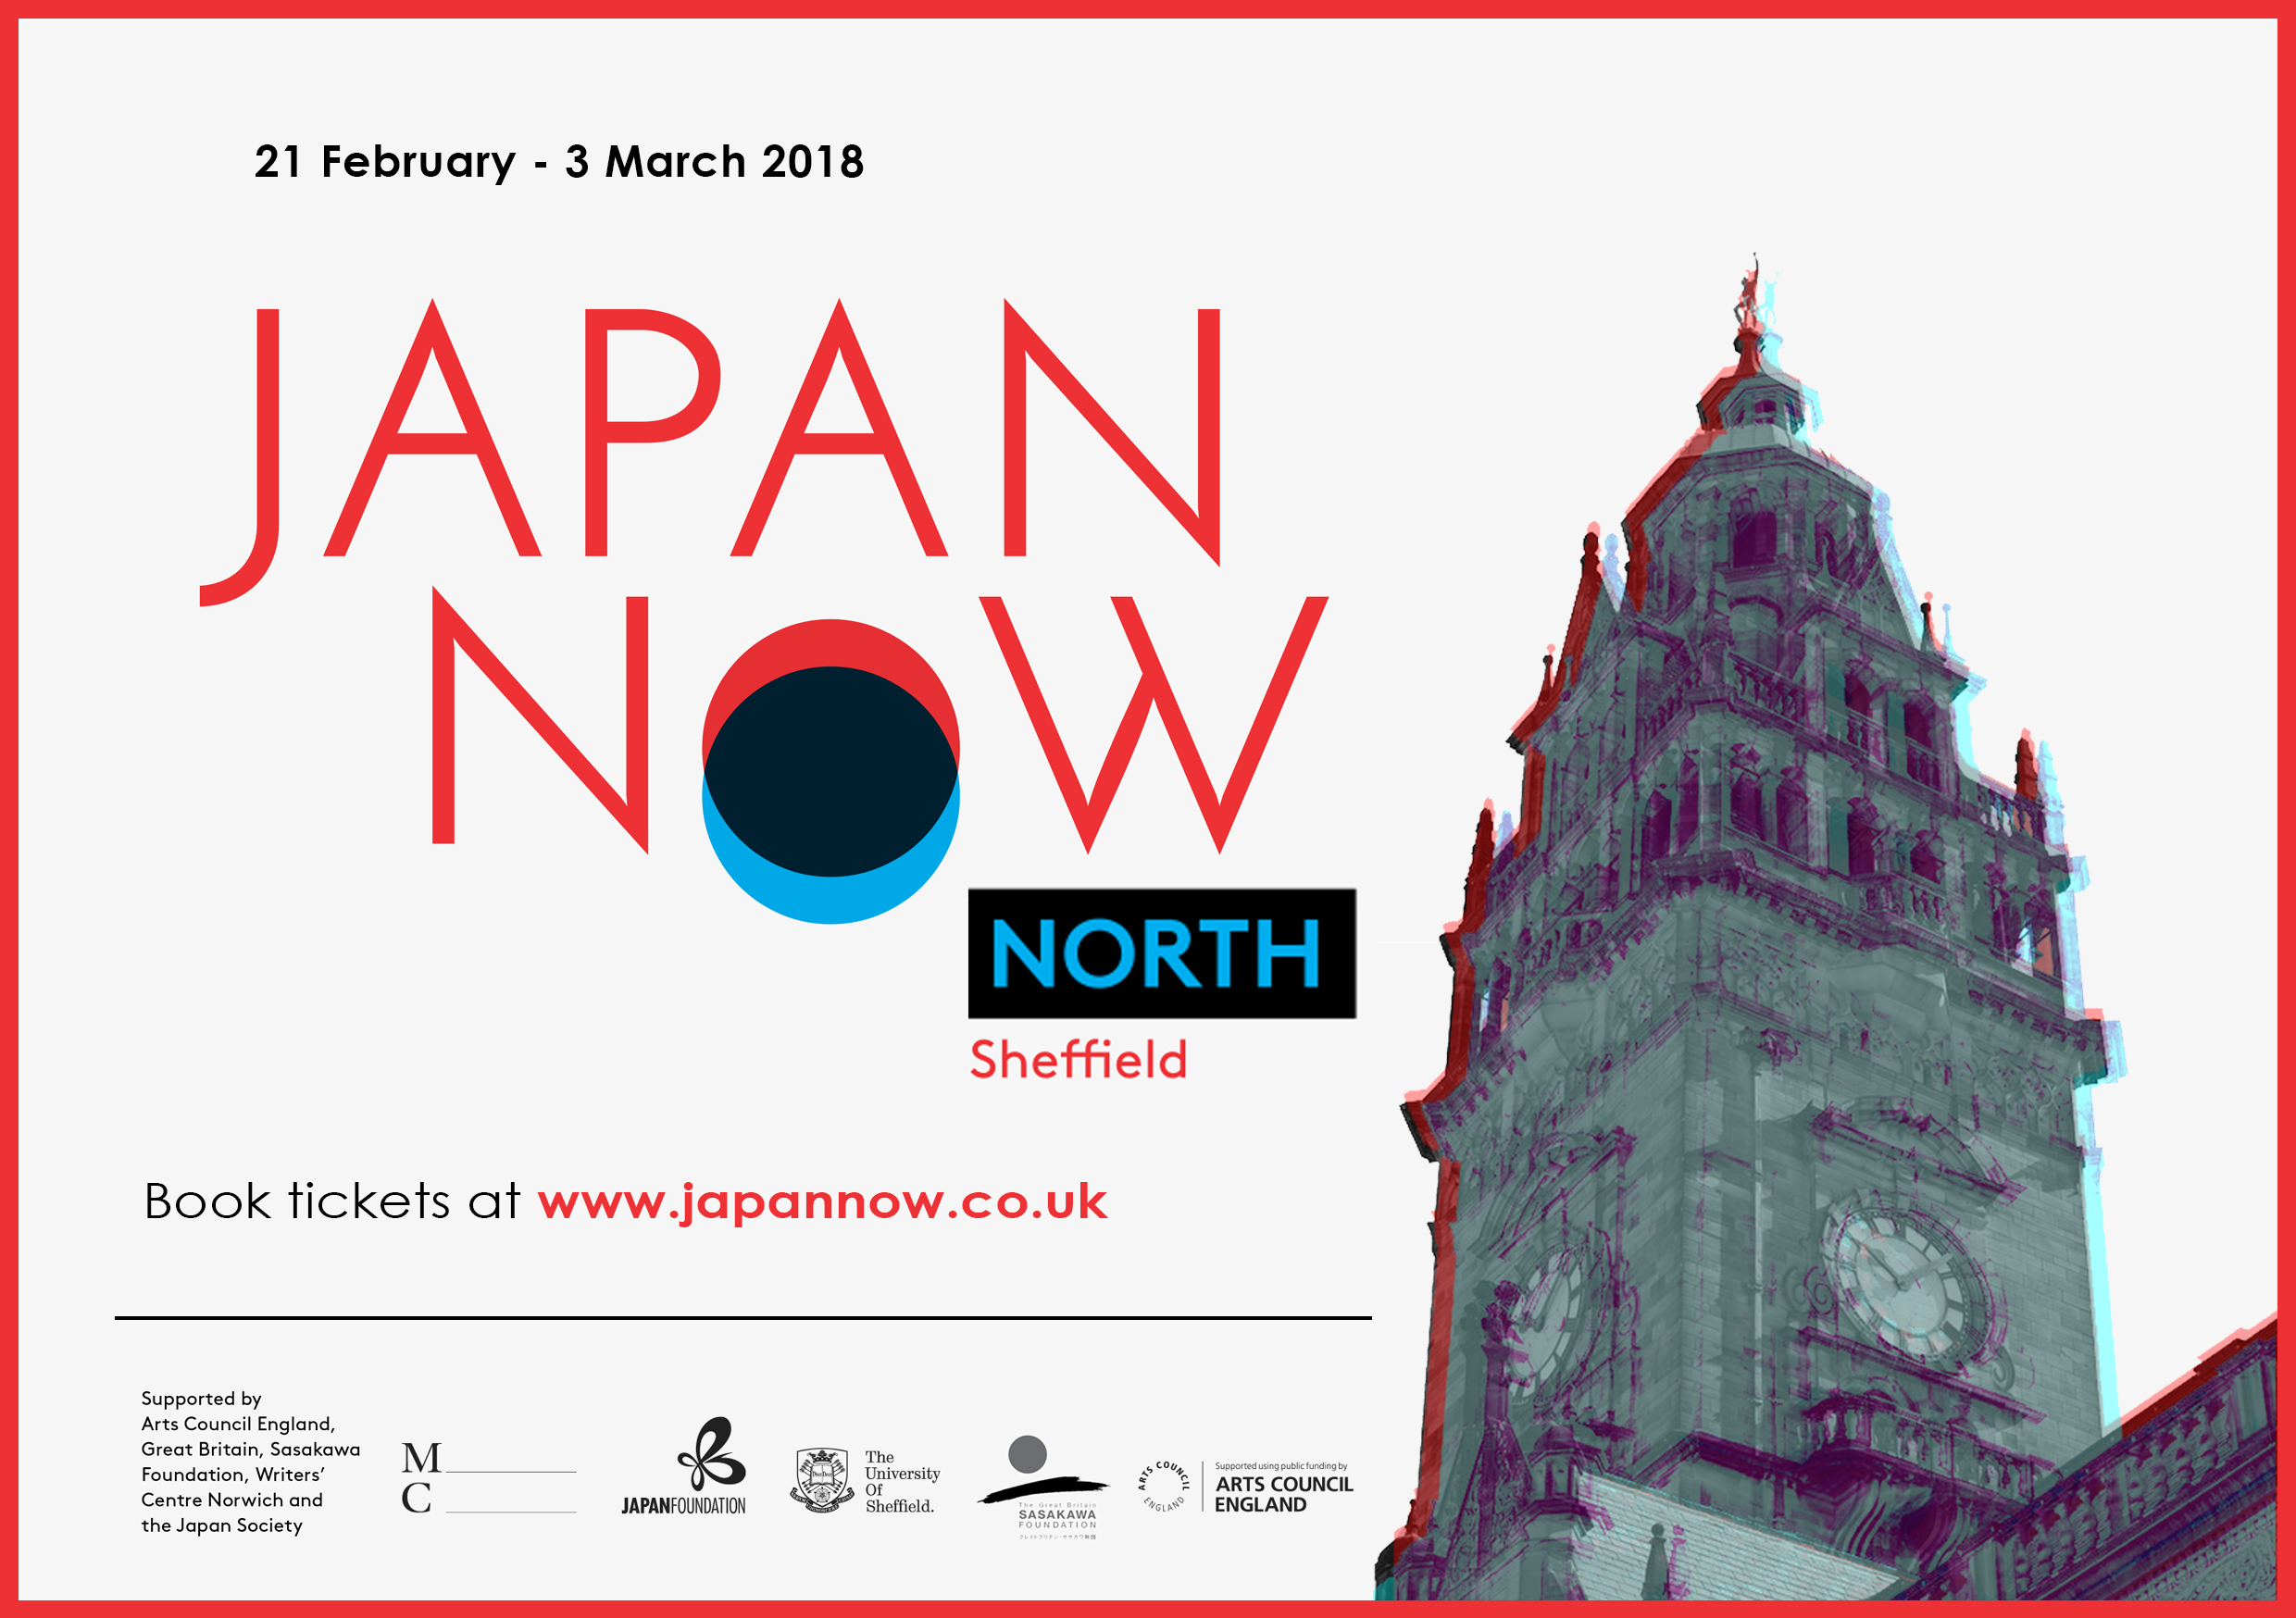 Copyright of Japan Now North